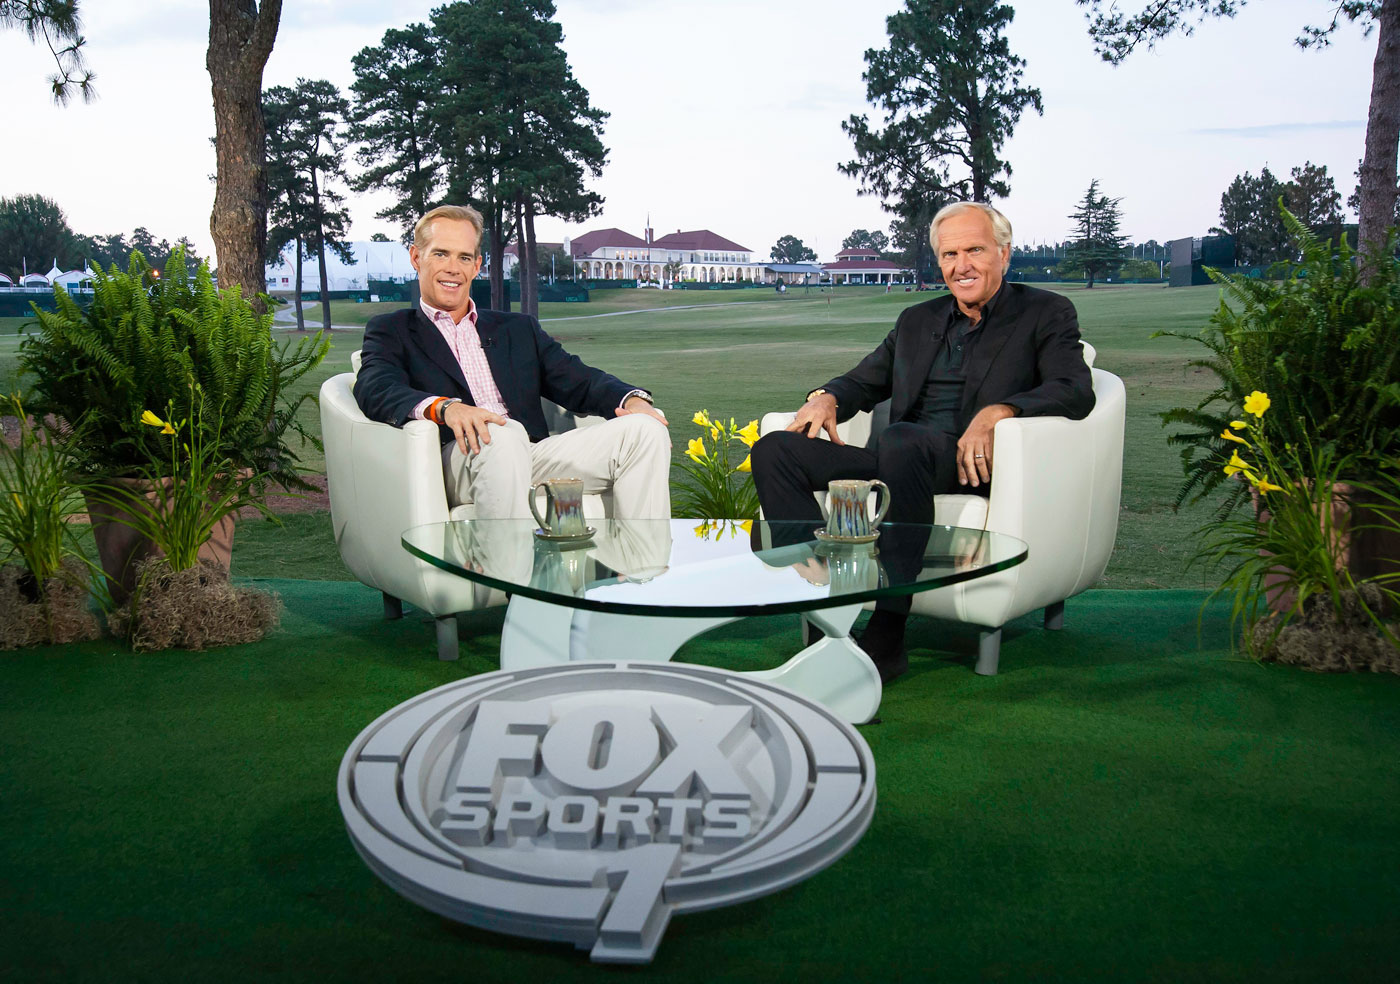 Joe Buck and Greg Norman during the 2014 U.S. Open at Pinehurst.